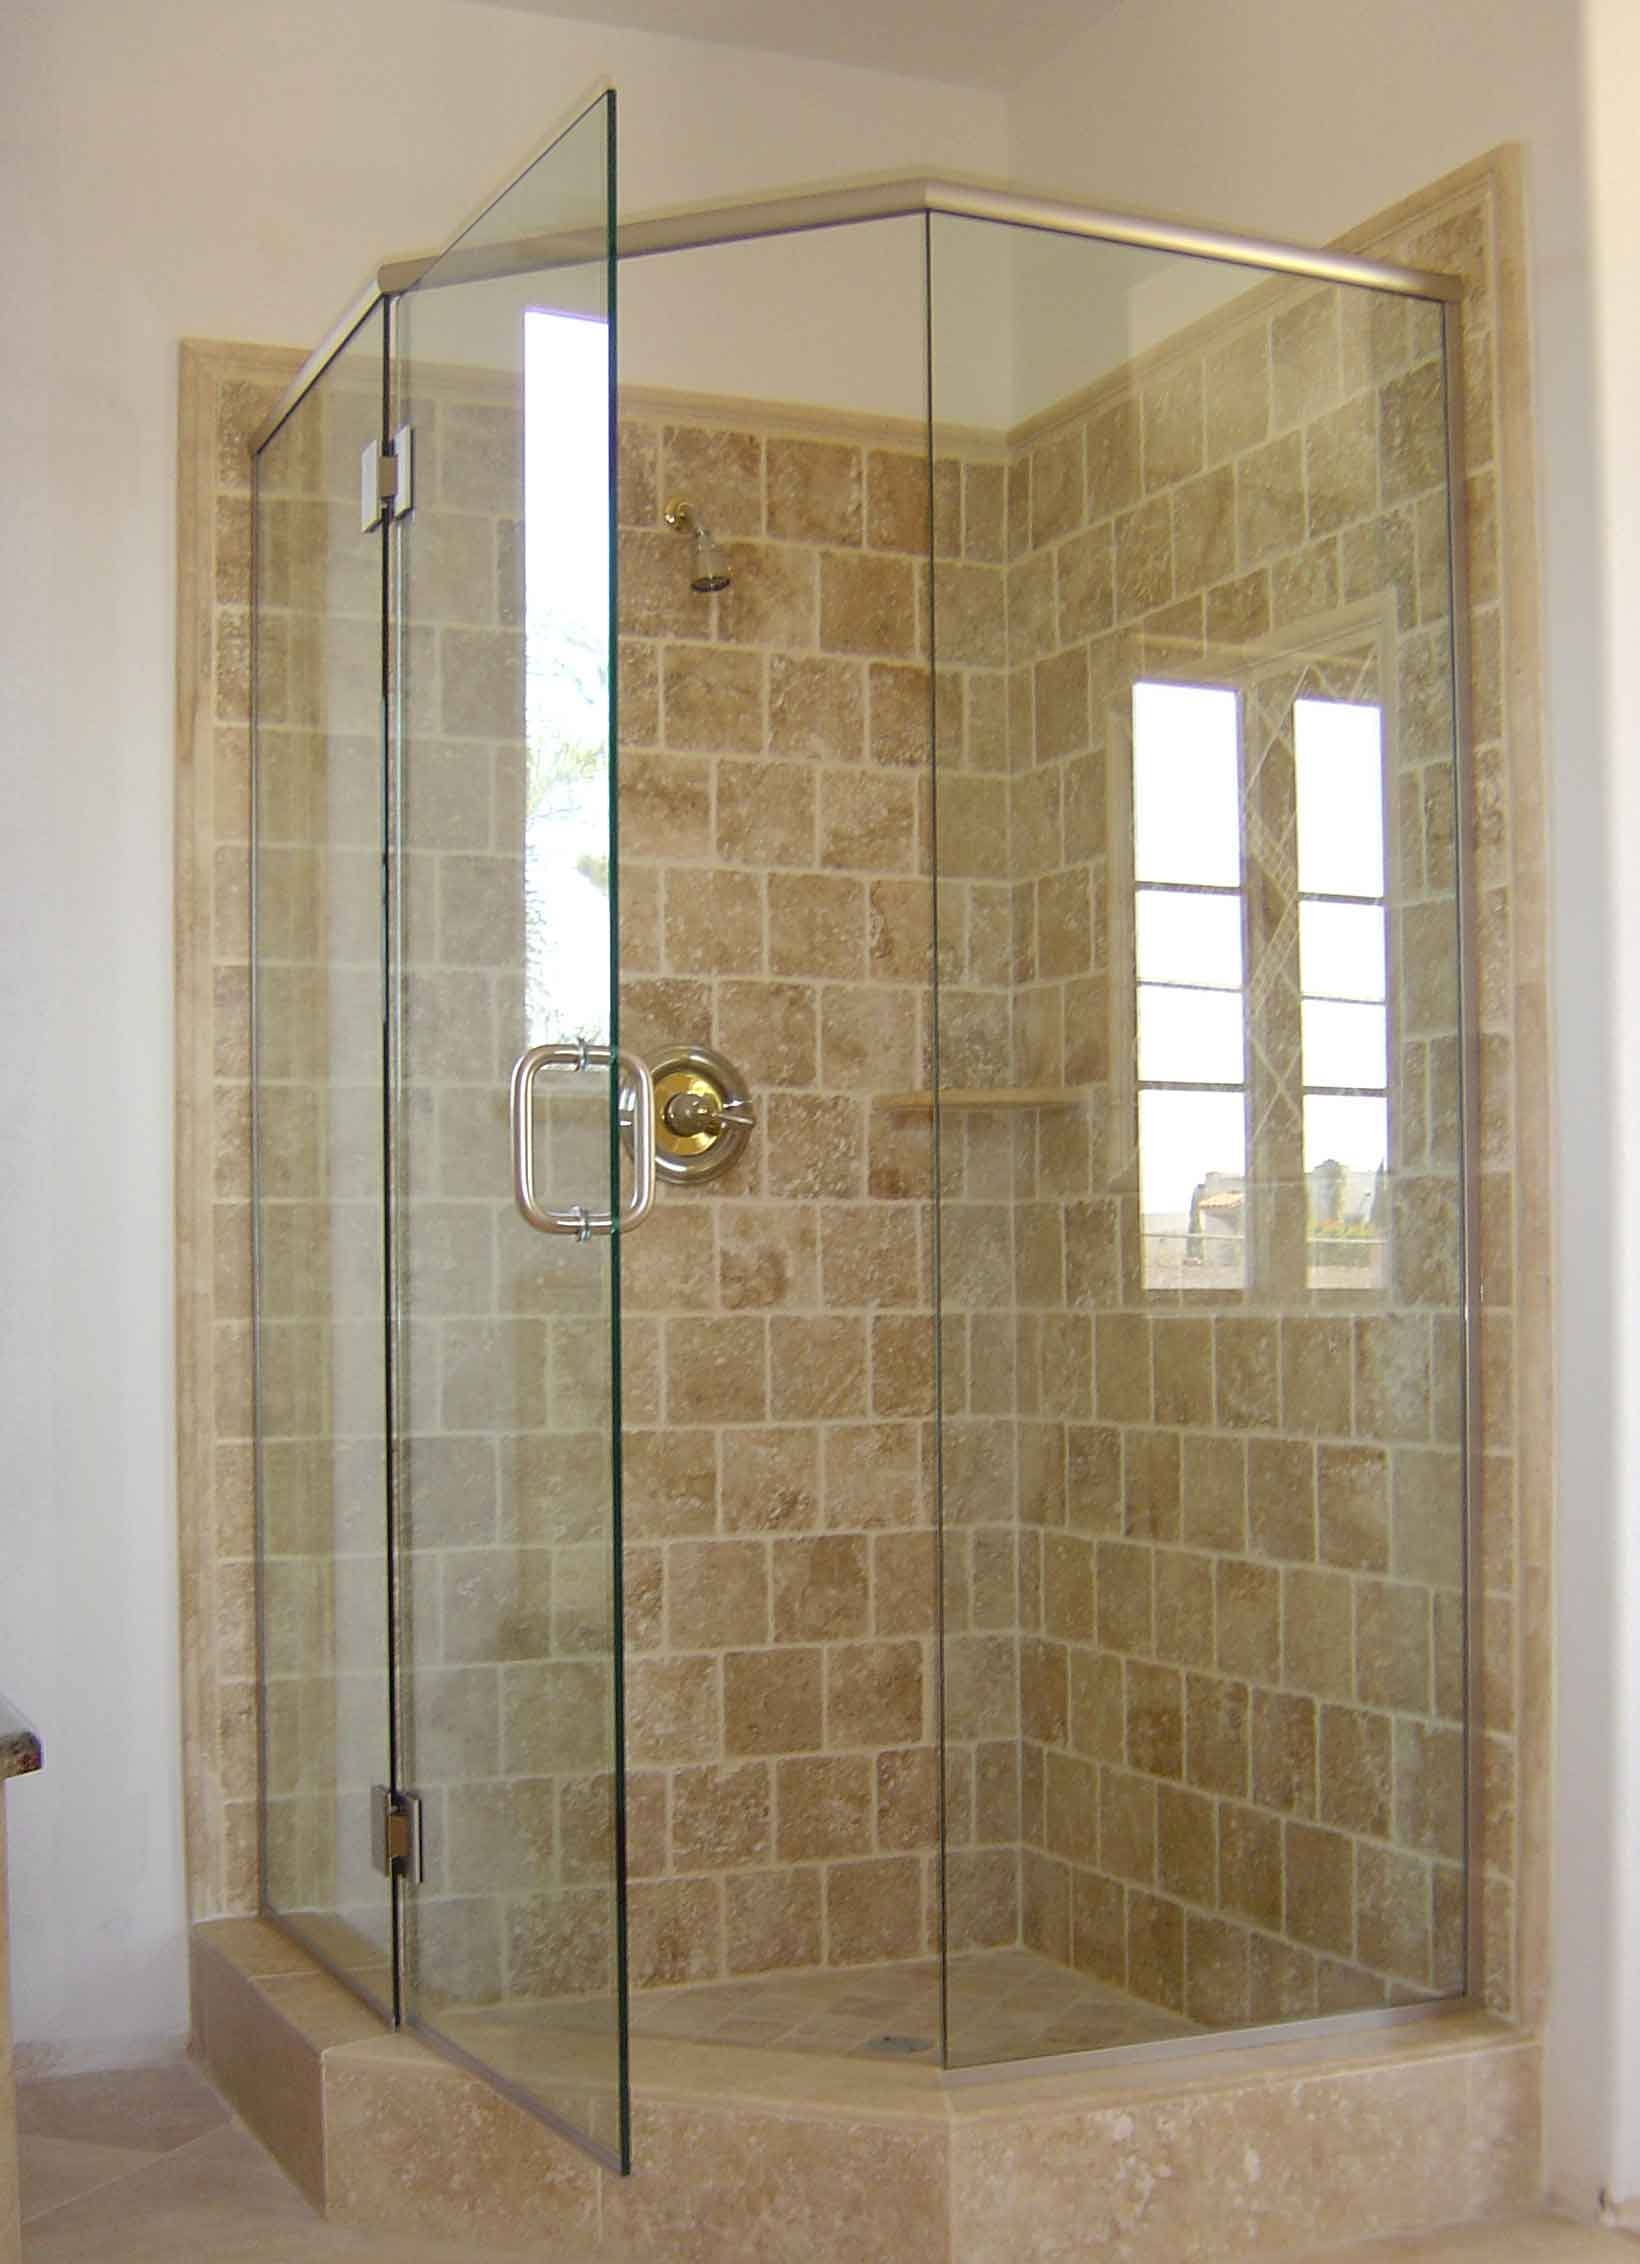 Shower Cubicle For Small Bathroomupstairs bathroom corner shower pinteres